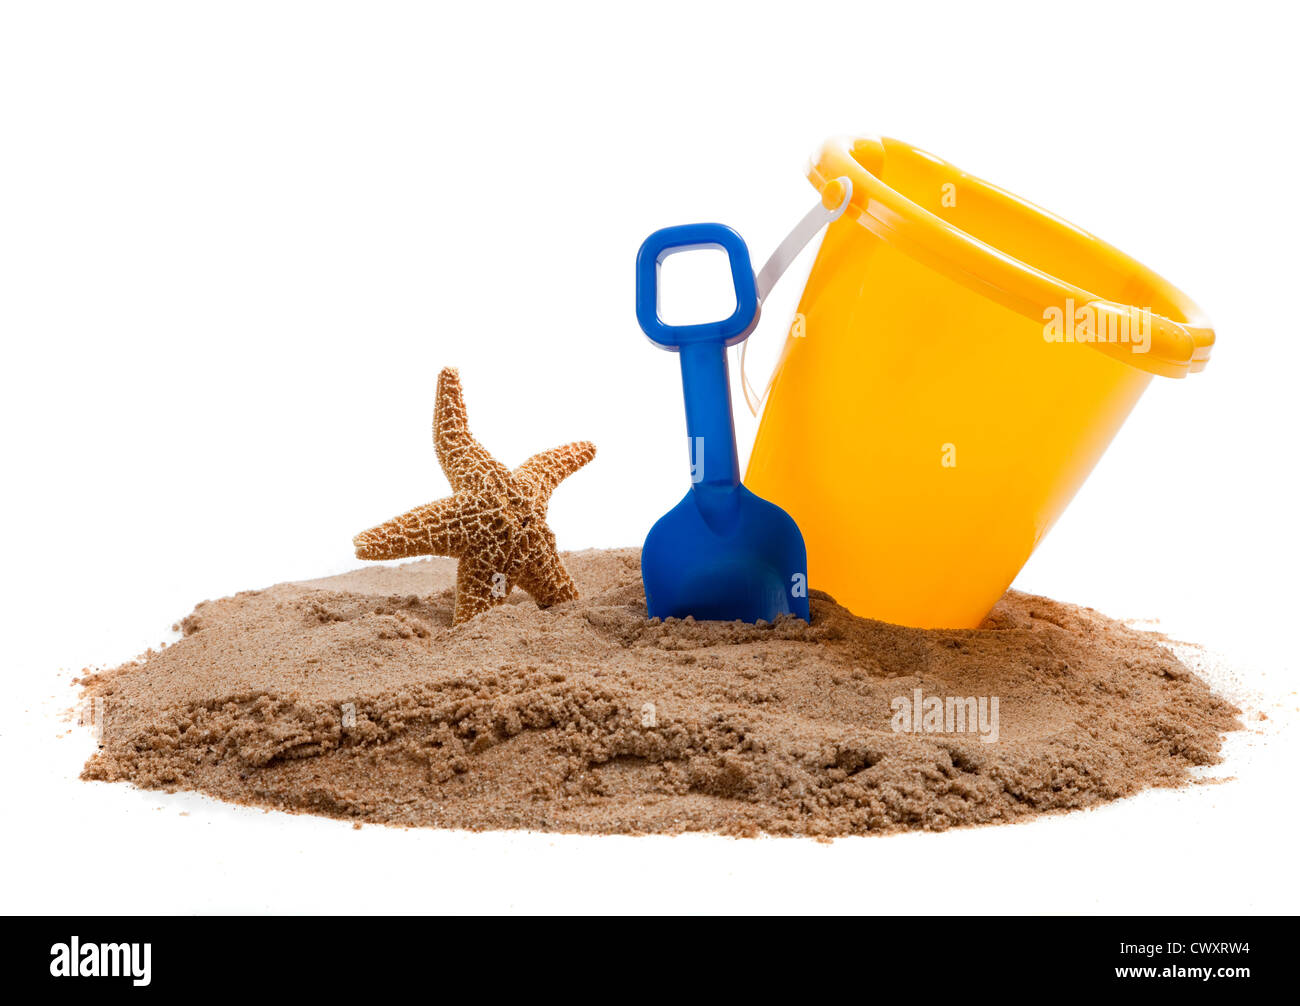 A Yellow Bucket and blue shovel on the beach with a starfish - Stock Image